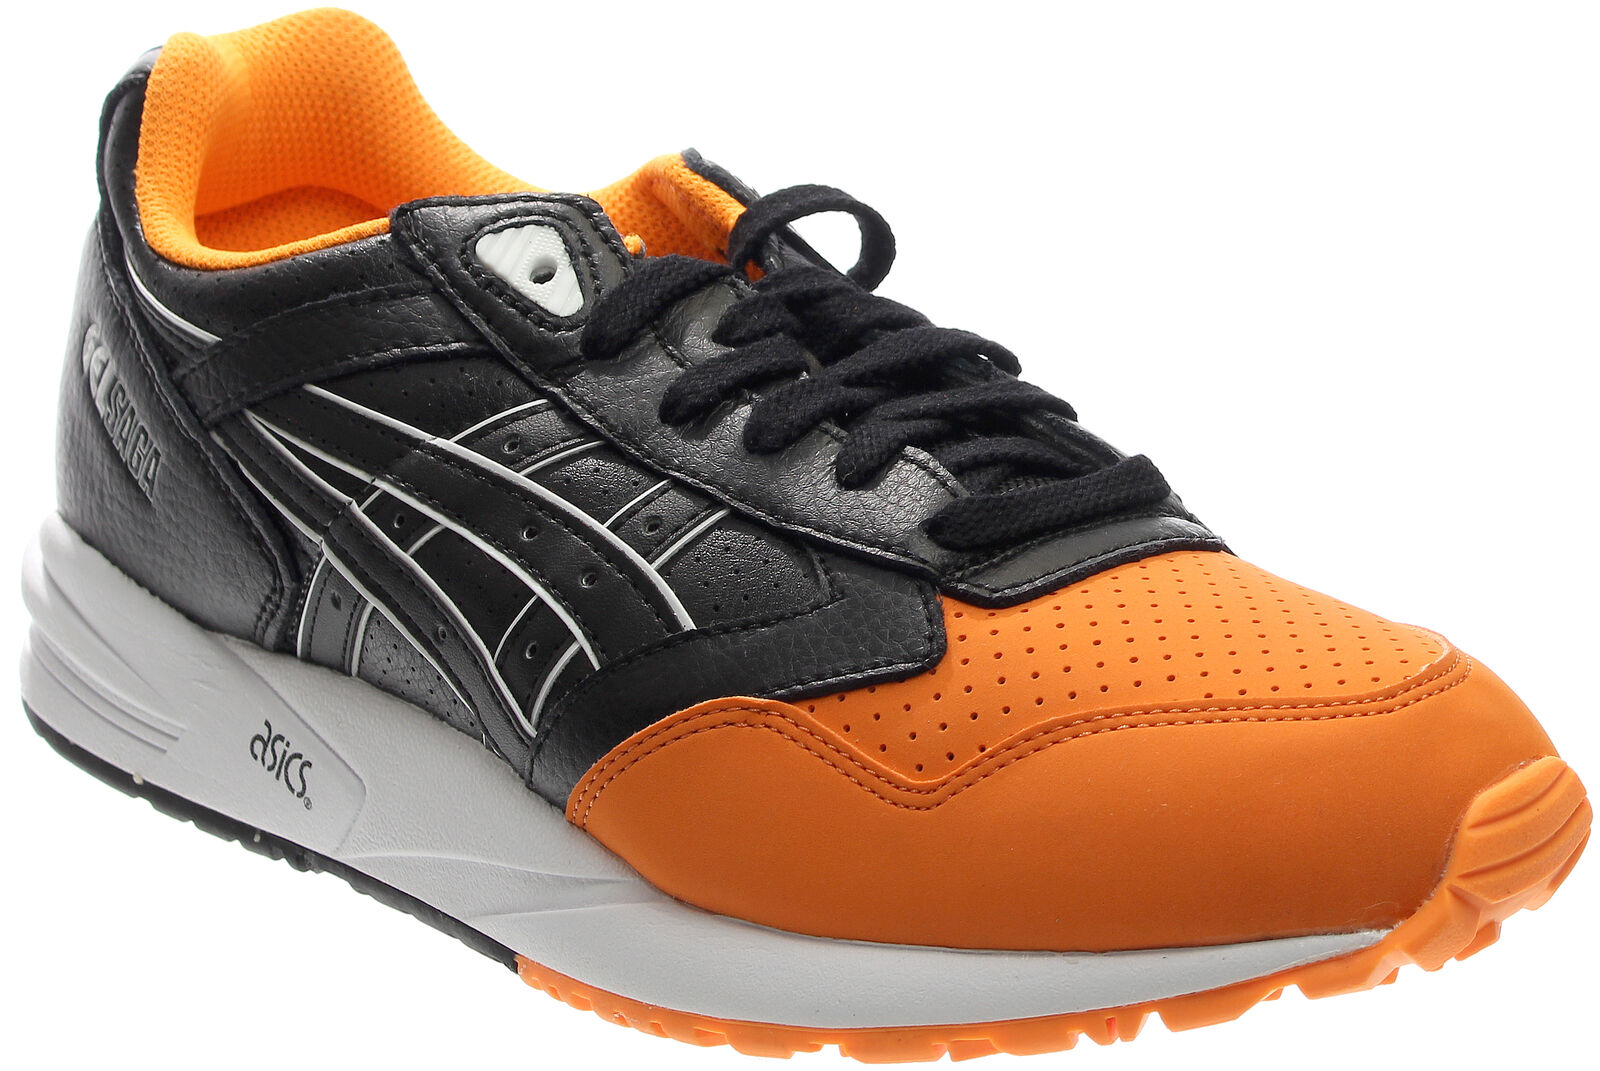 new arrival e0d9e 3da54 ASICS GEL-Saga Athletic Running Trail Shoes - Orange - Mens